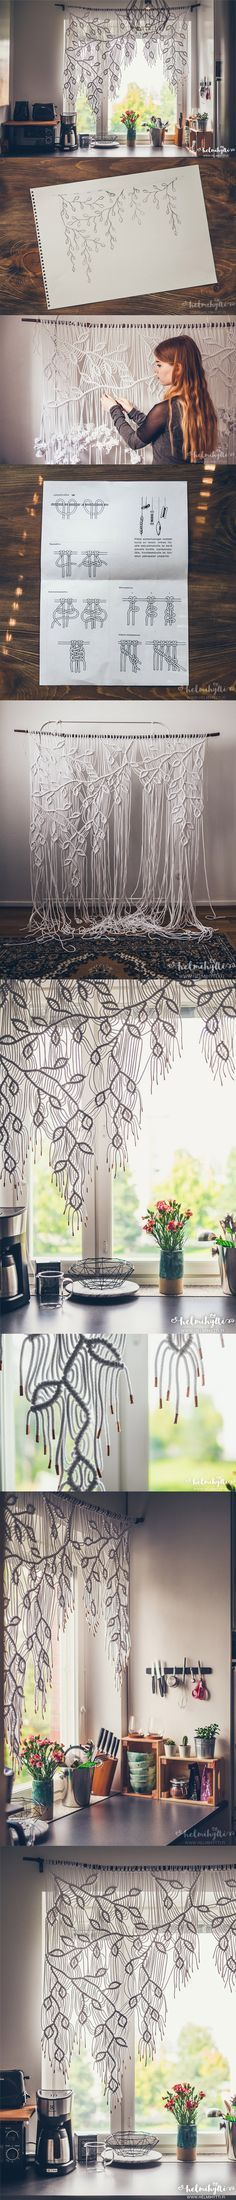 DIY macrame curtain with asymmetric pattern tutorial. Only one knot type used! Copper tape at the ends of the yarn. Original blog post & instructio…